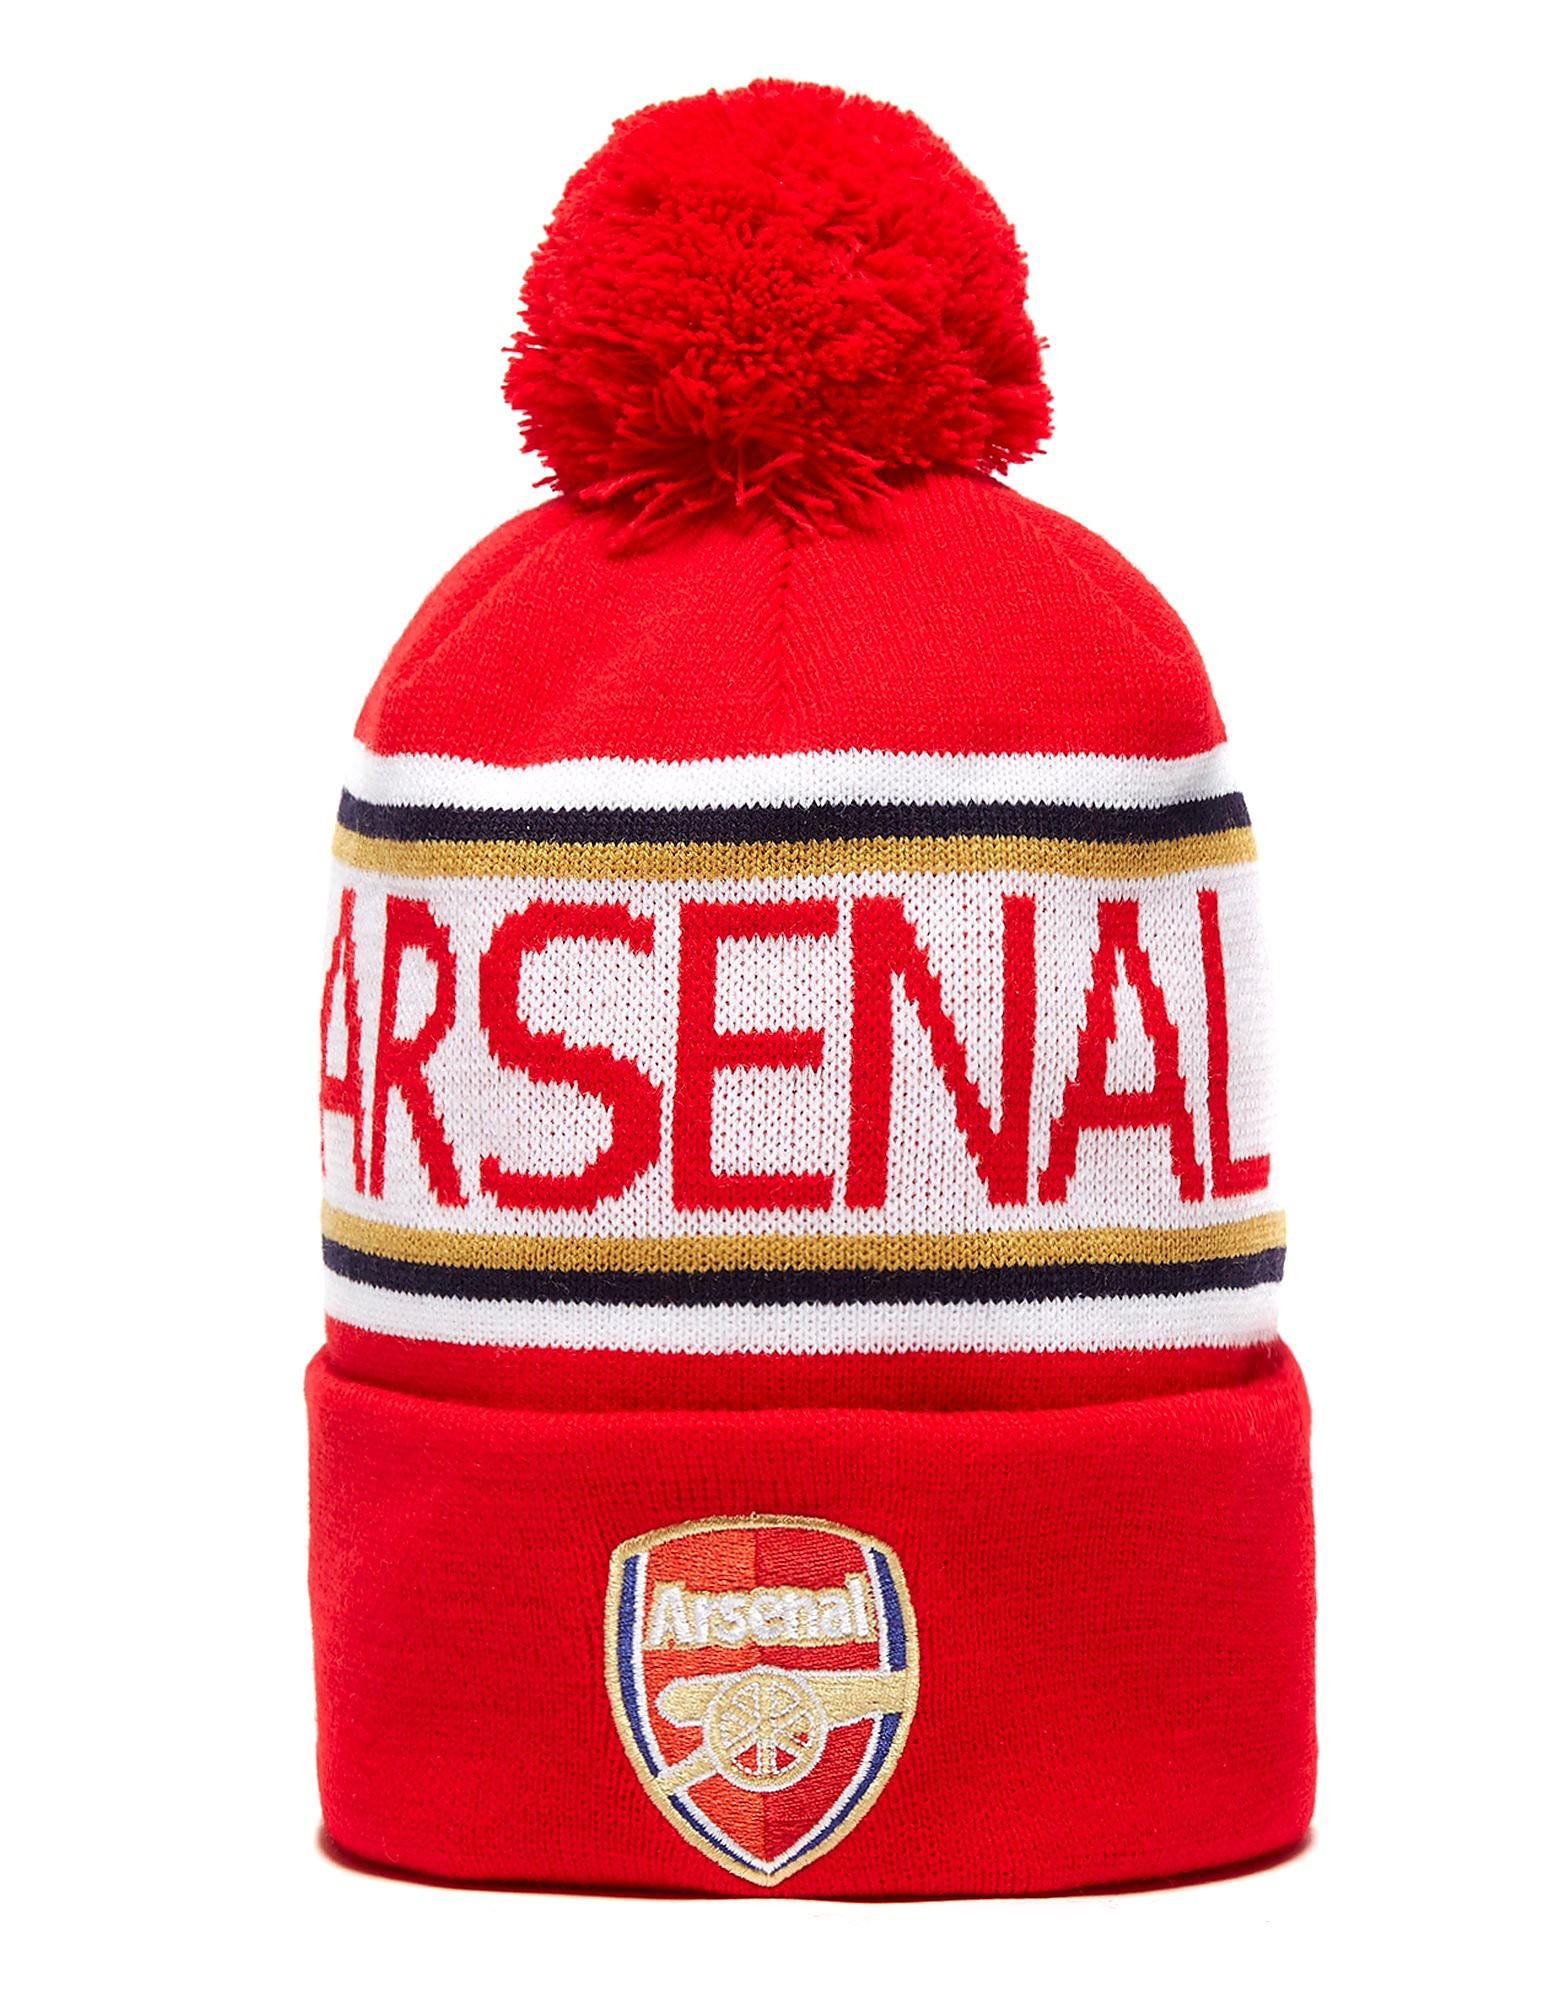 PUMA Berretto con pompon dell'Arsenal